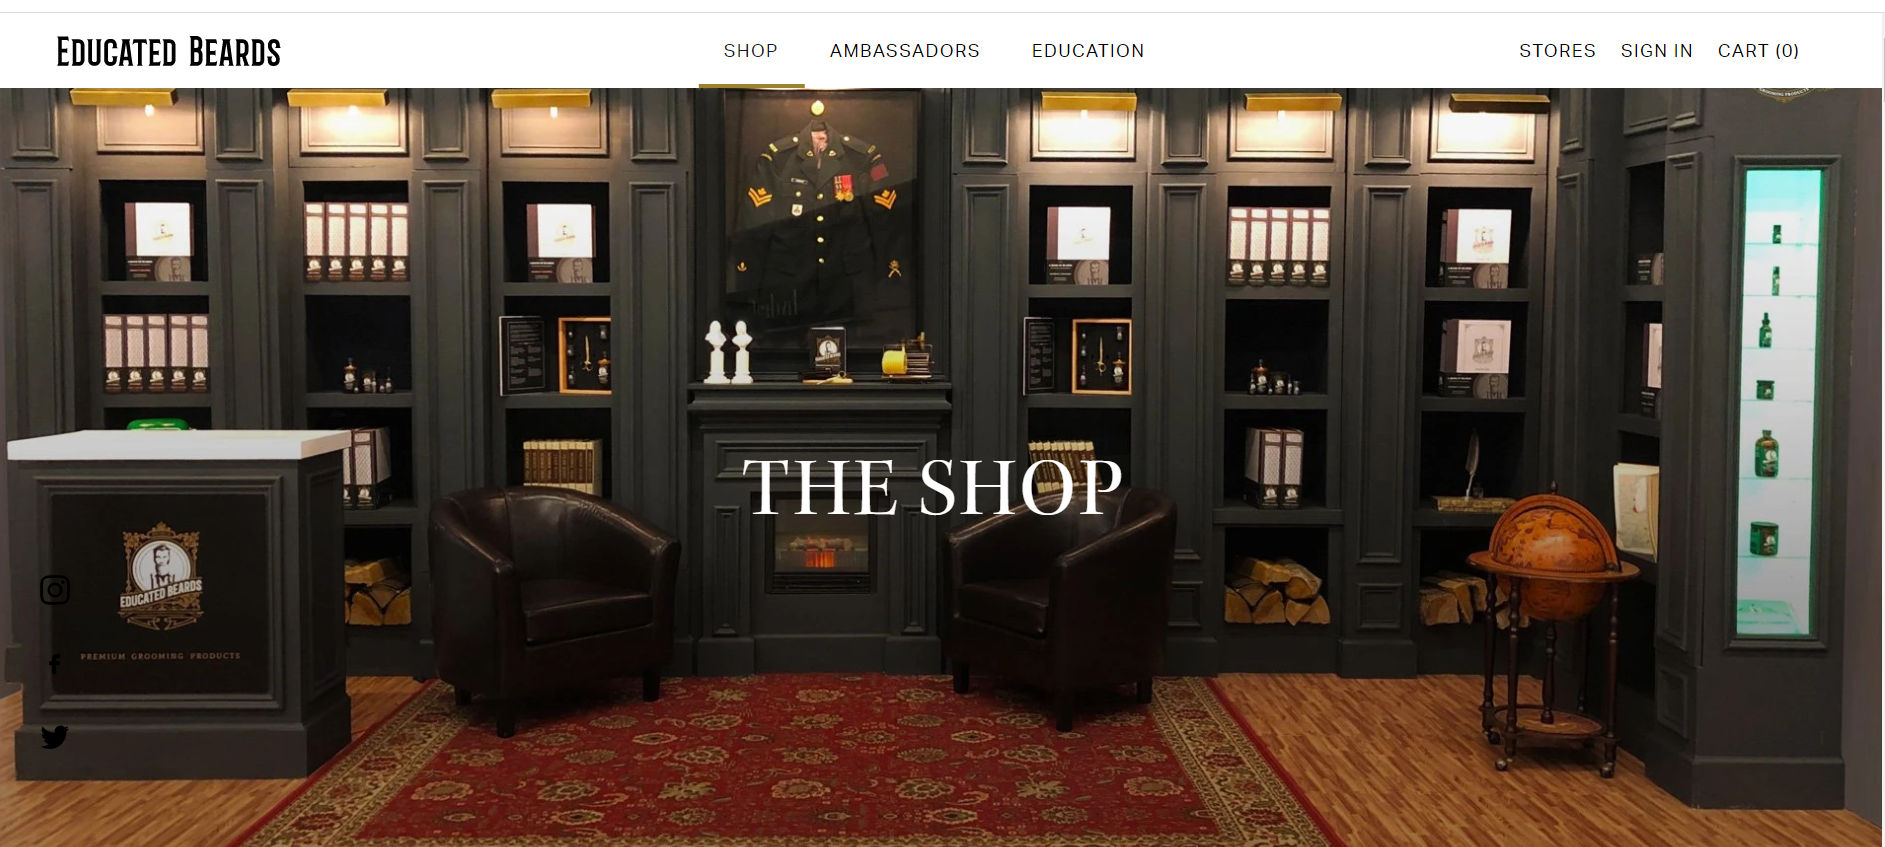 The trade show booth, as it appears on the Educated Beards website.